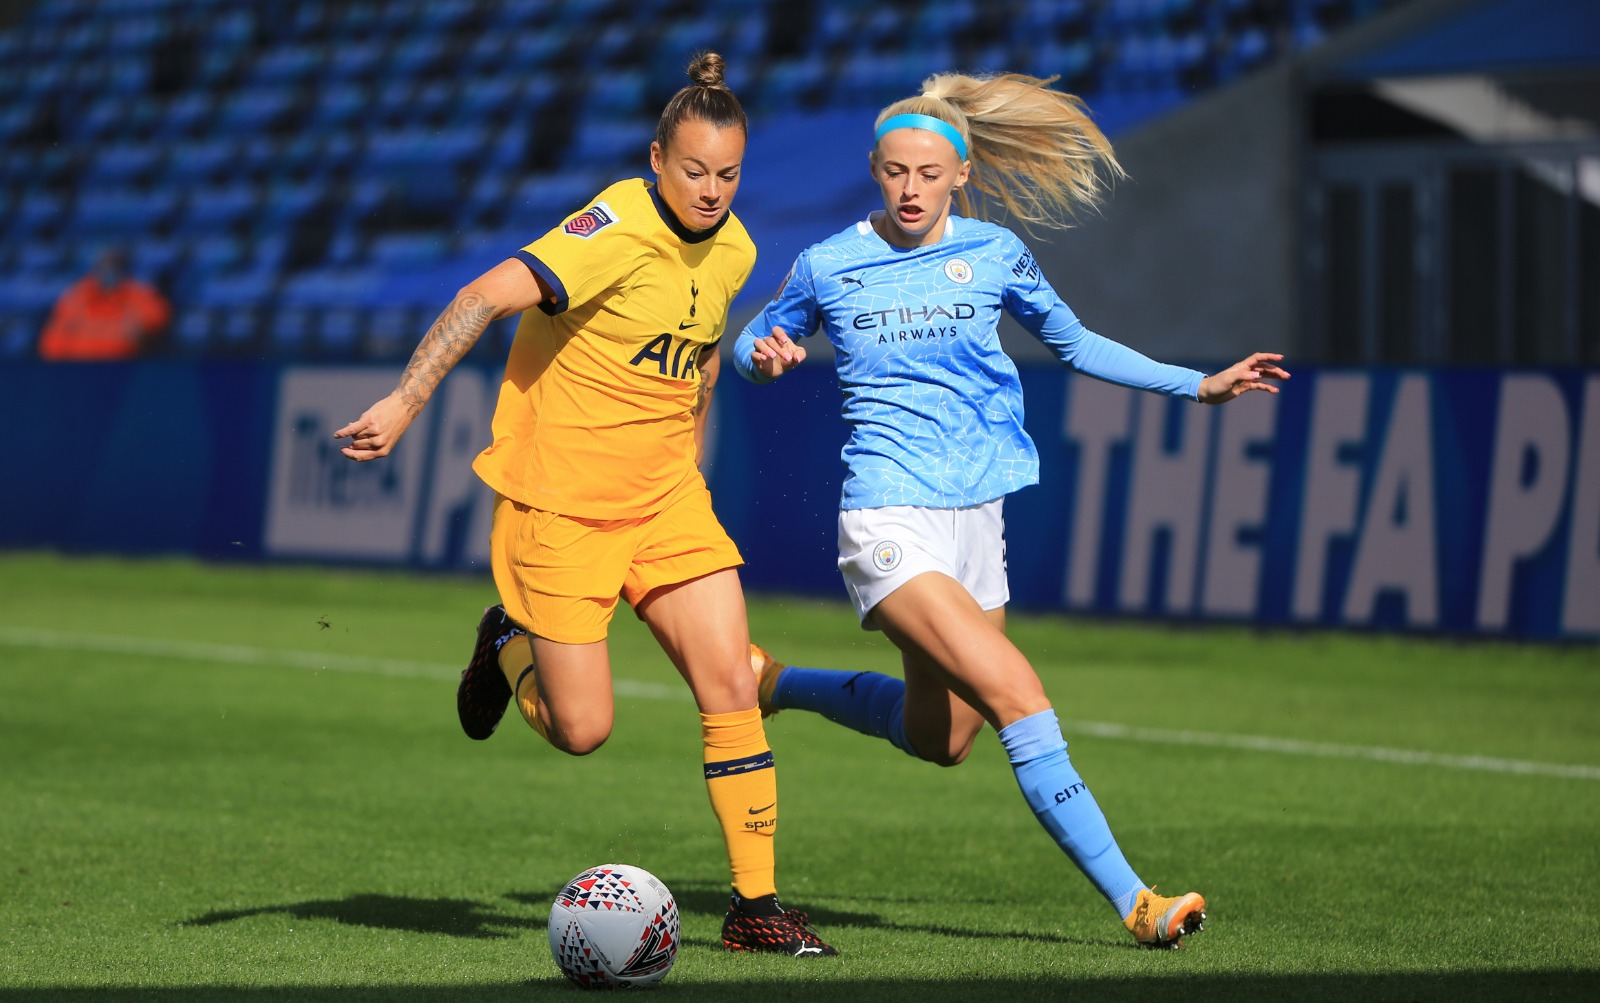 Kelly nets a worldie as City sink Spurs